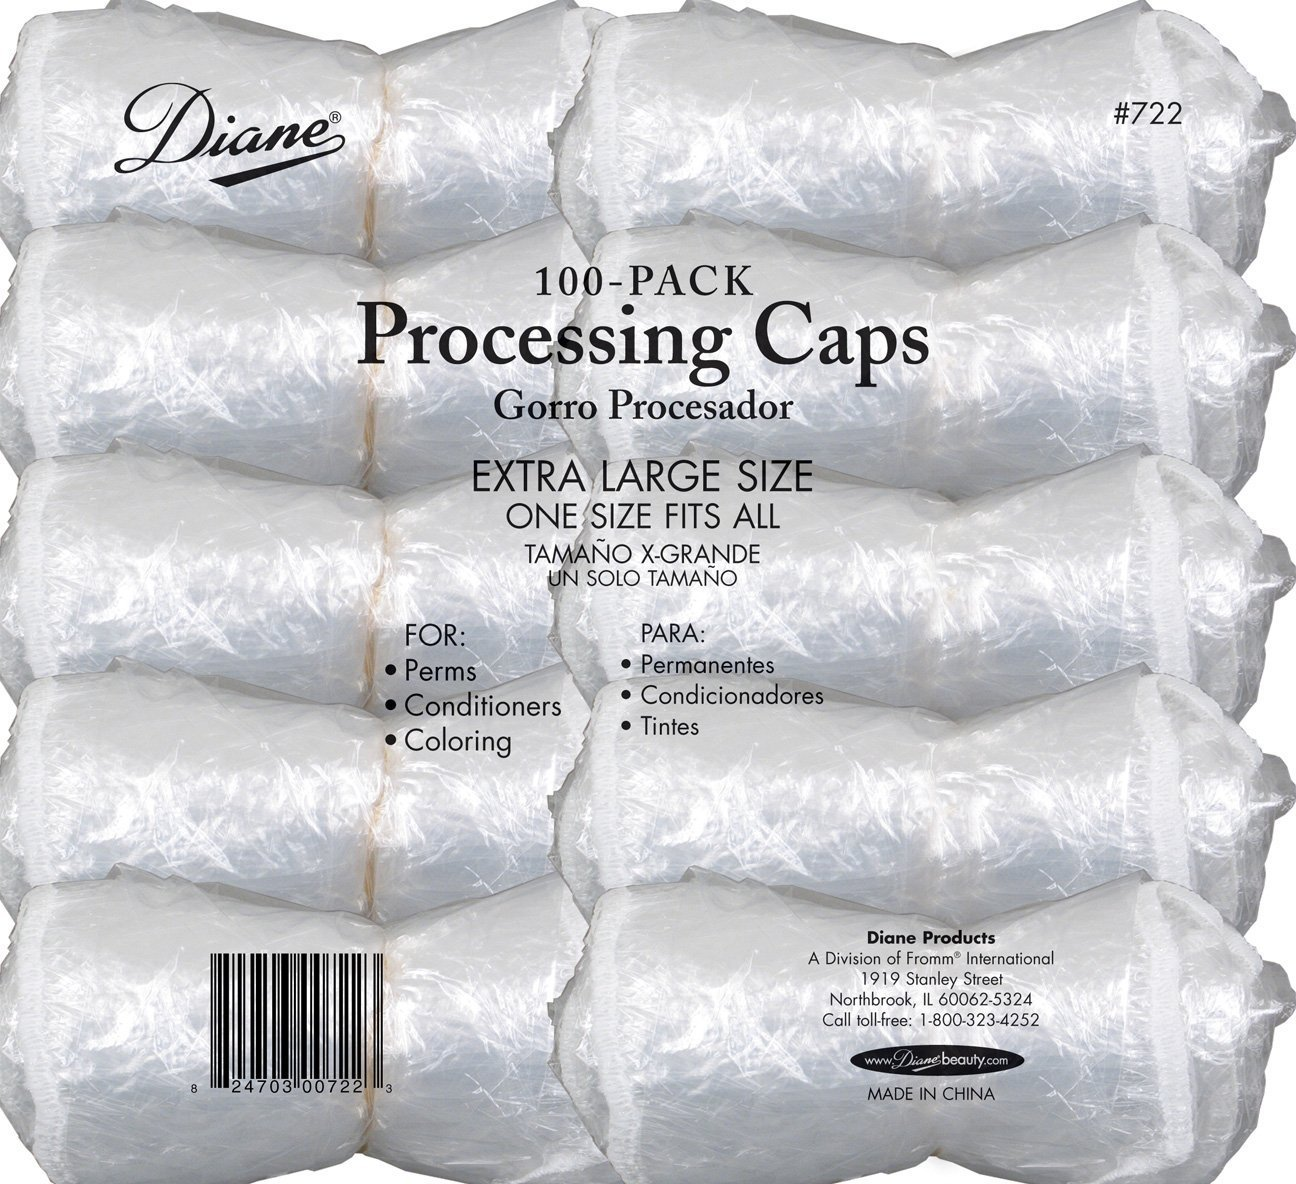 Diane Processing Caps, 200-pack, hair color, chemicals, perms, hair conditioner, one size, extra large, reusable, protects your hair, dyeing, hair care, salon use, professional use, stylist, secures, elastic band by Diane (Image #1)